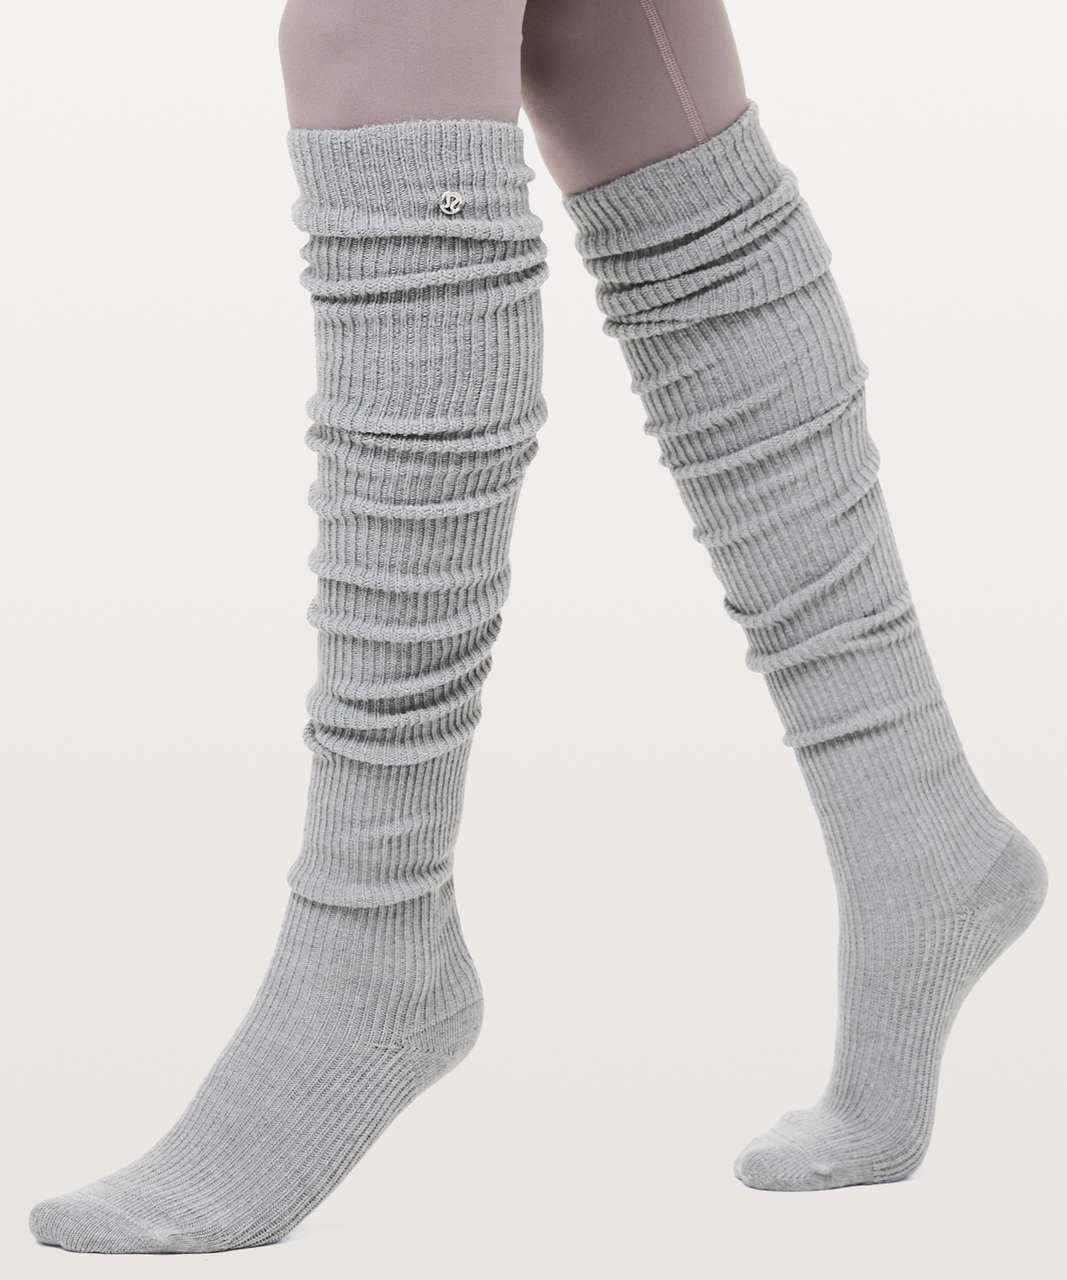 Lululemon Savasana Sock - Light Cast